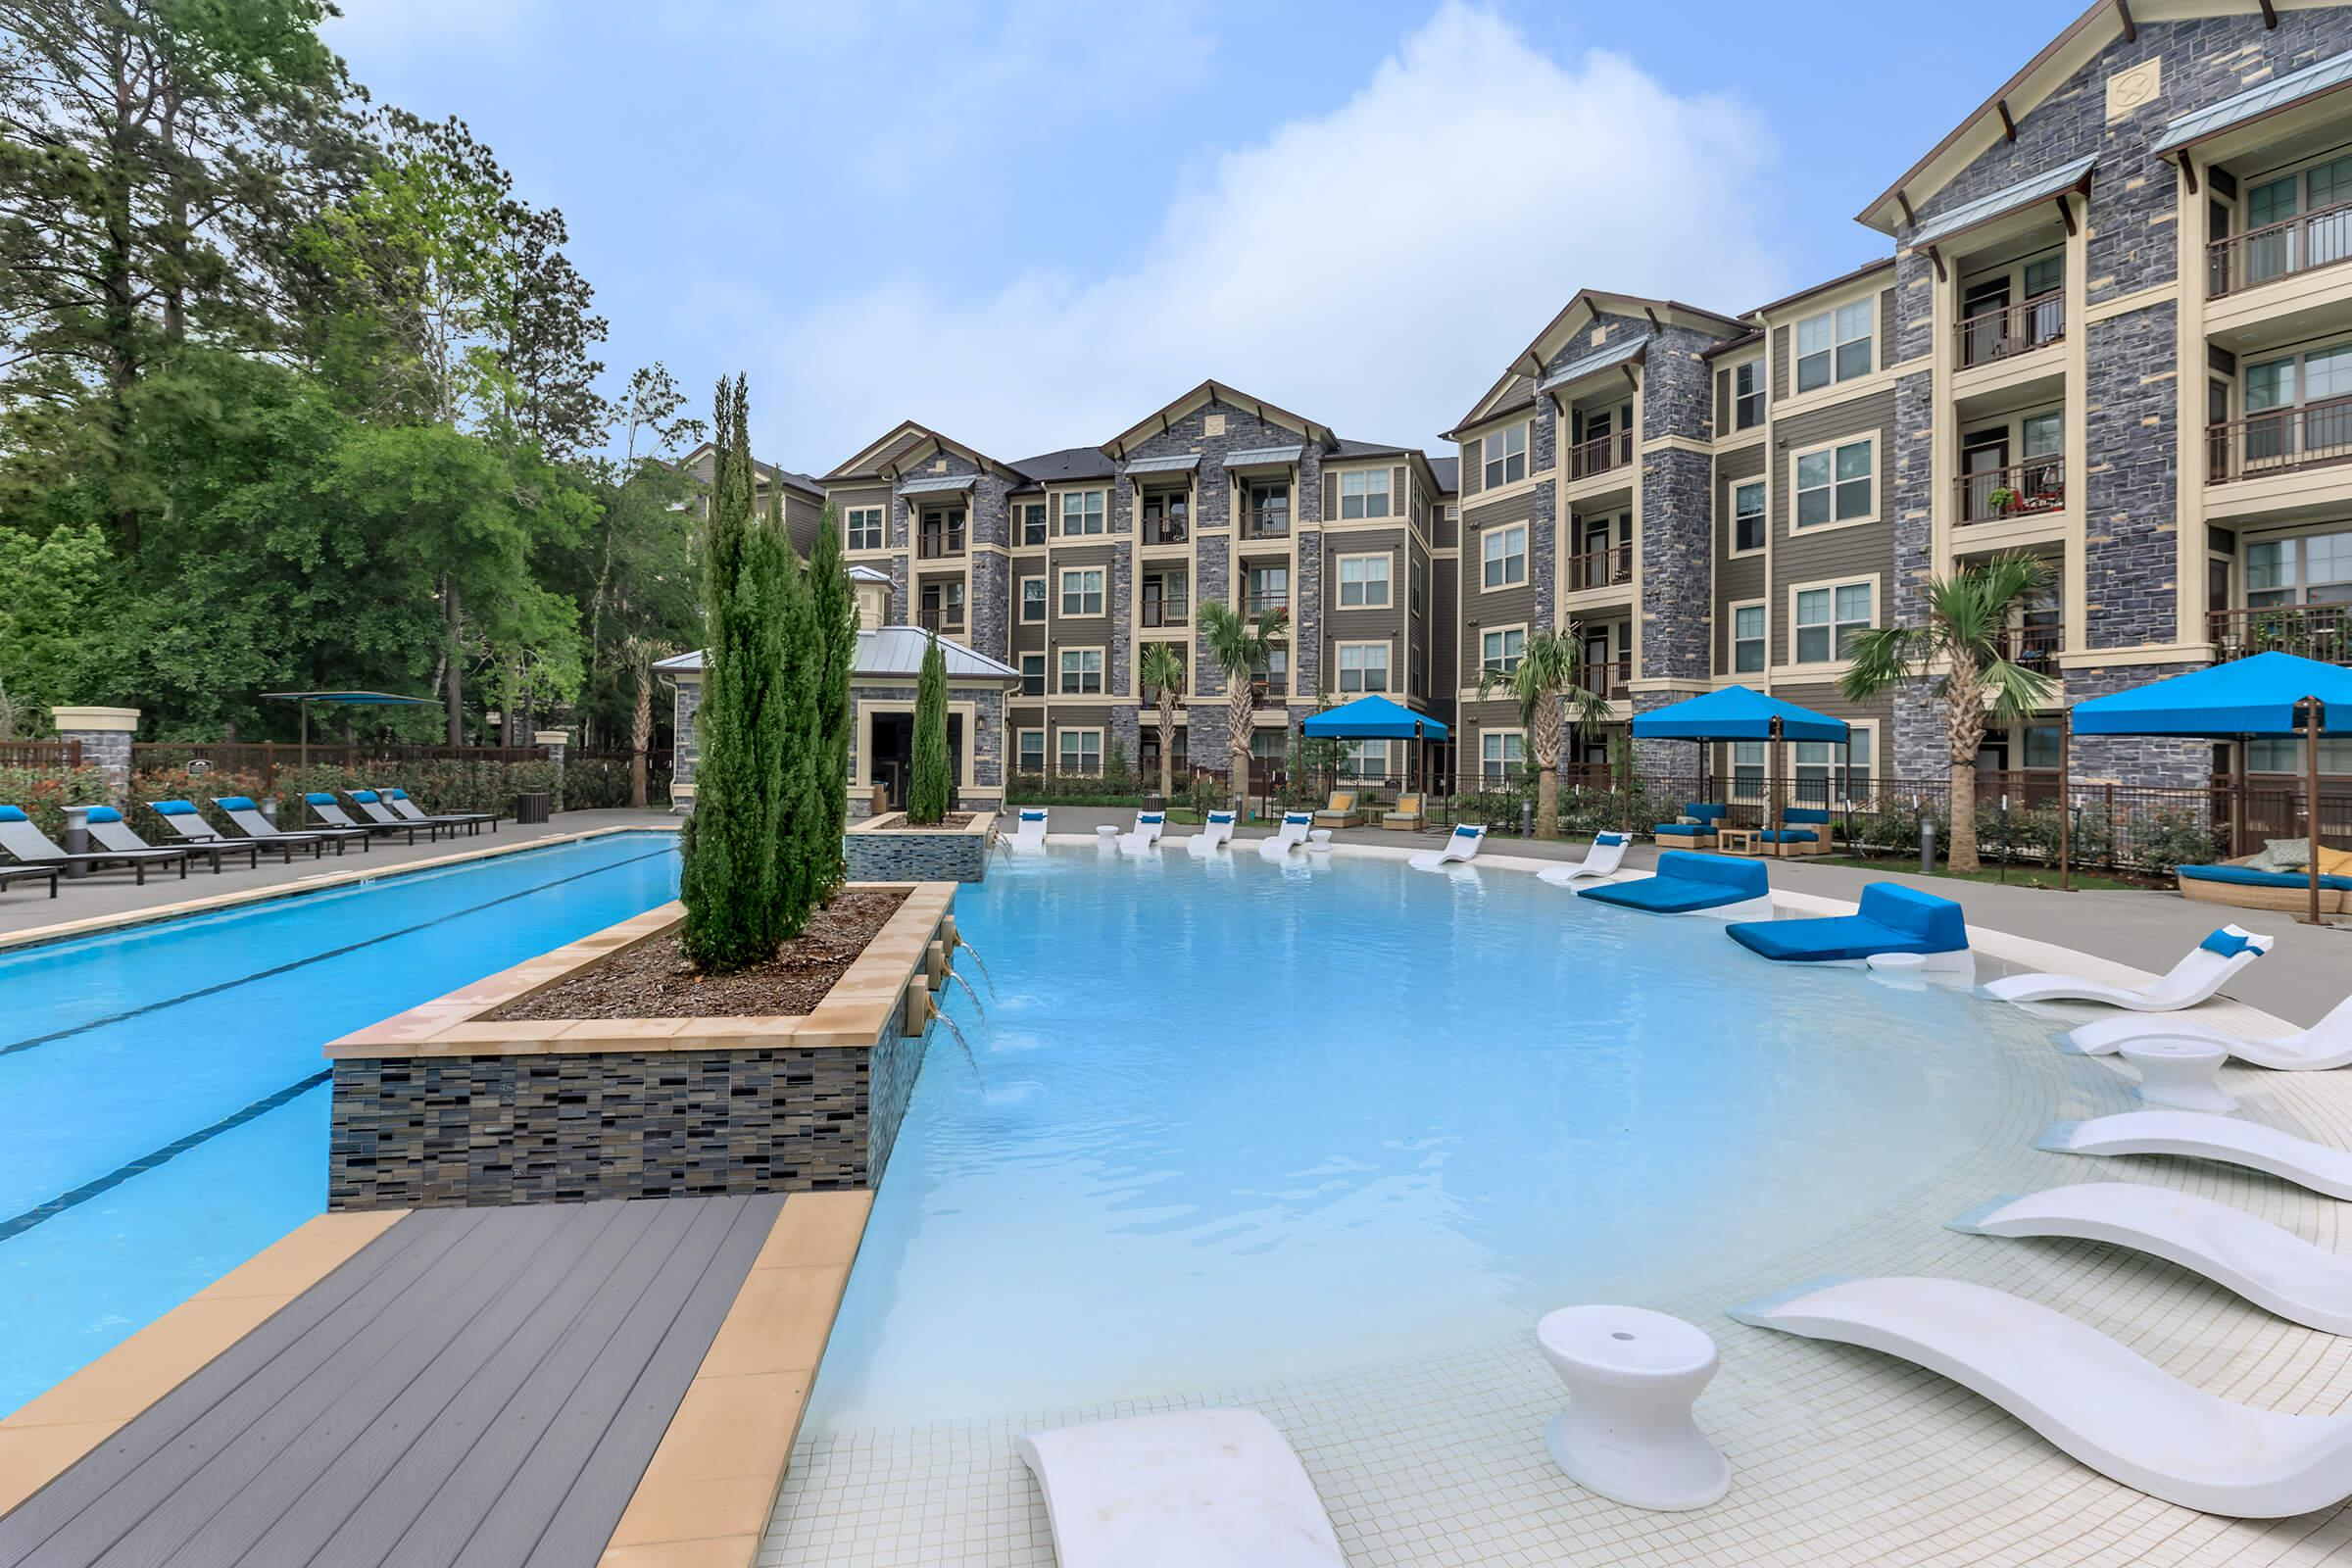 Resort-style pool with beach entry, water loungers, and apartment building to the right.